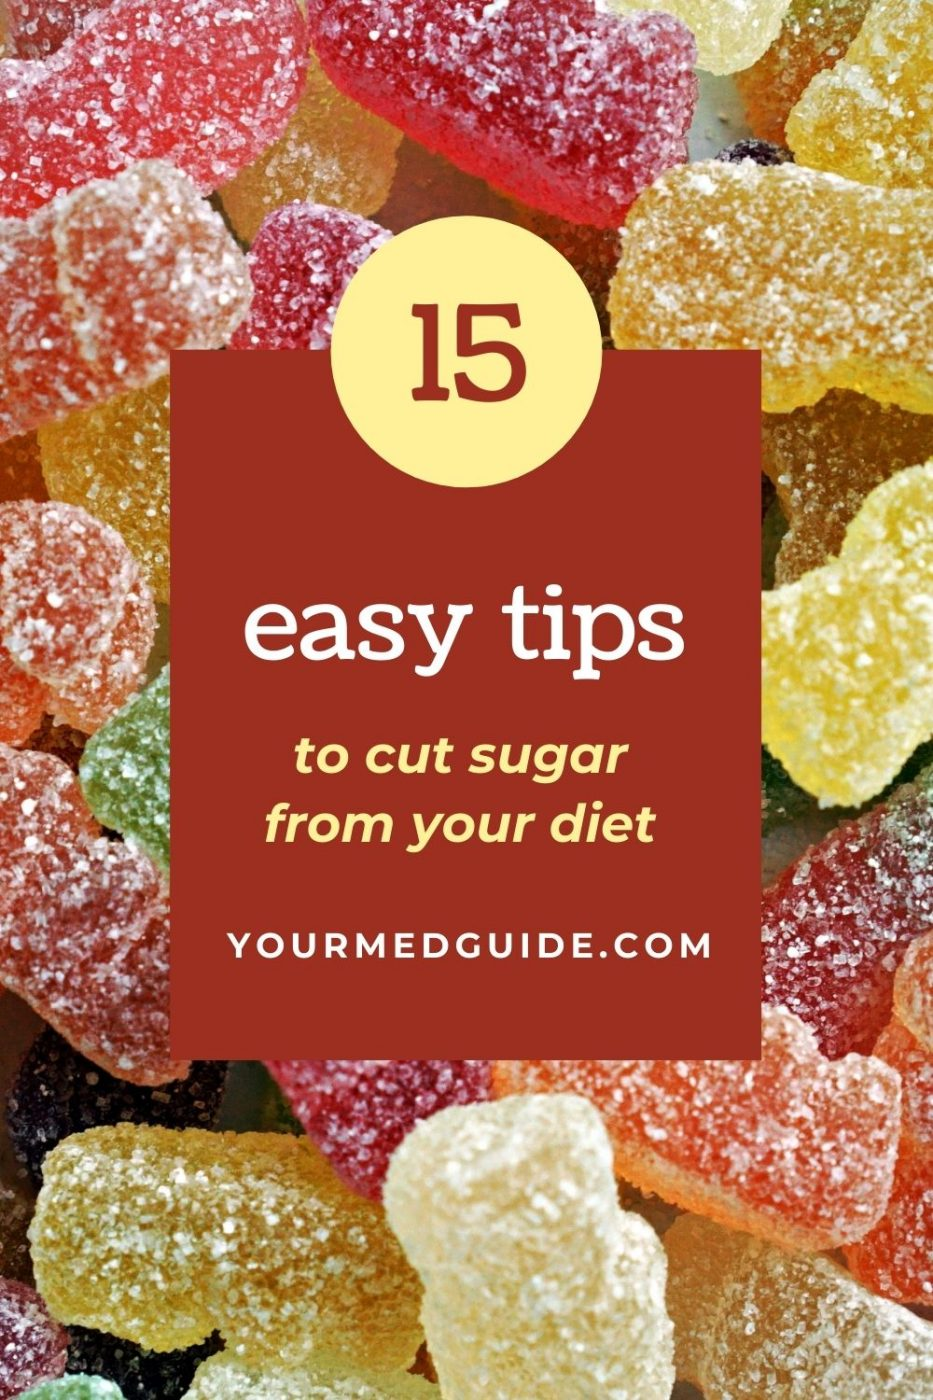 15 easy tips to cut sugar from your diet